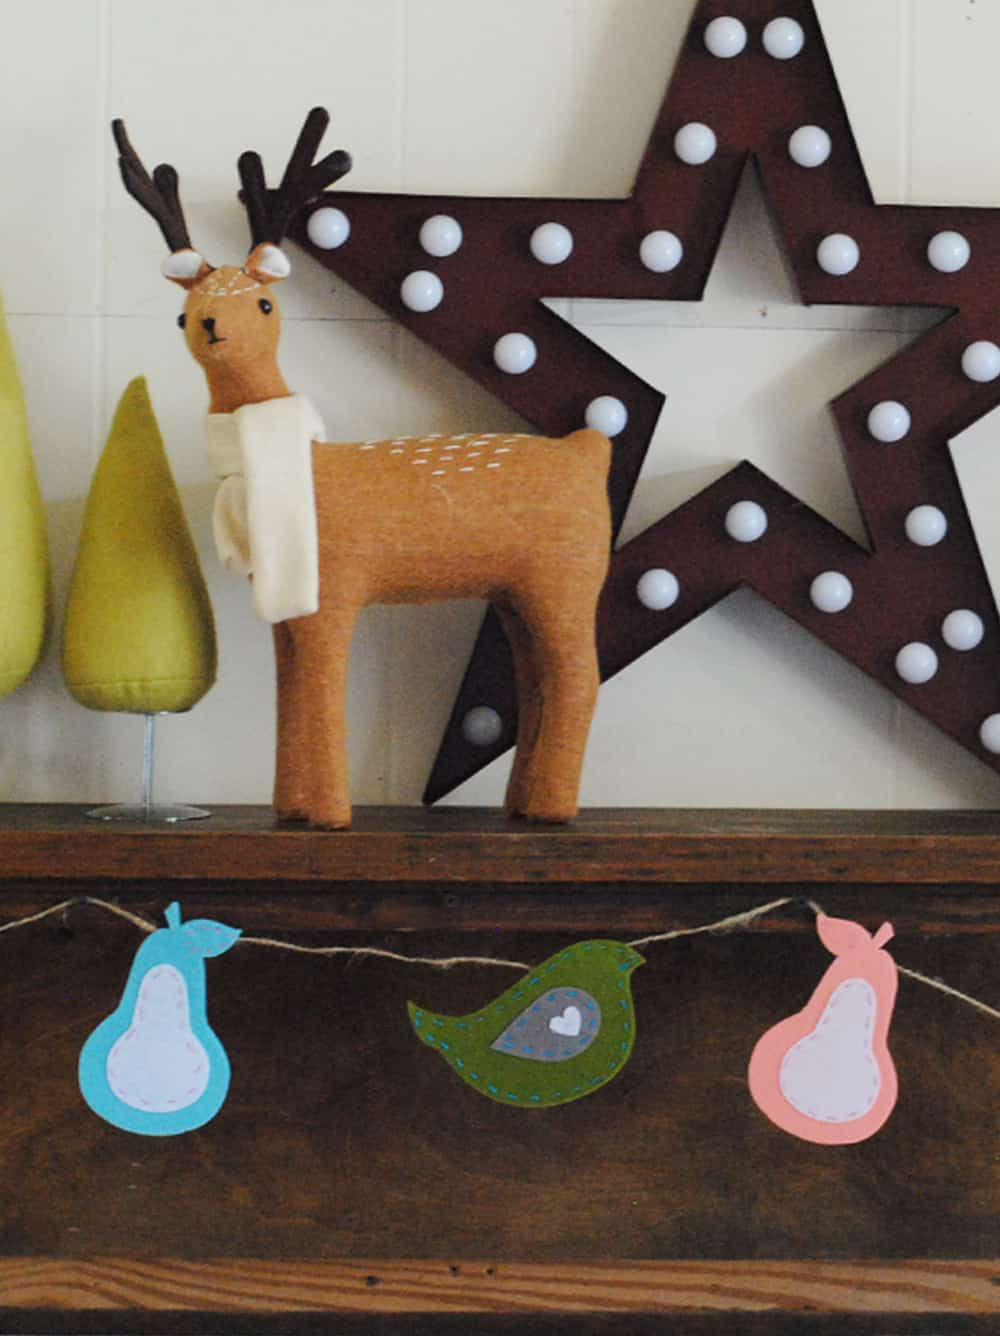 Alaskan lifestyle blogger, Cris Stone, made a cute felthandmade partridge and pears garland for the holidays!